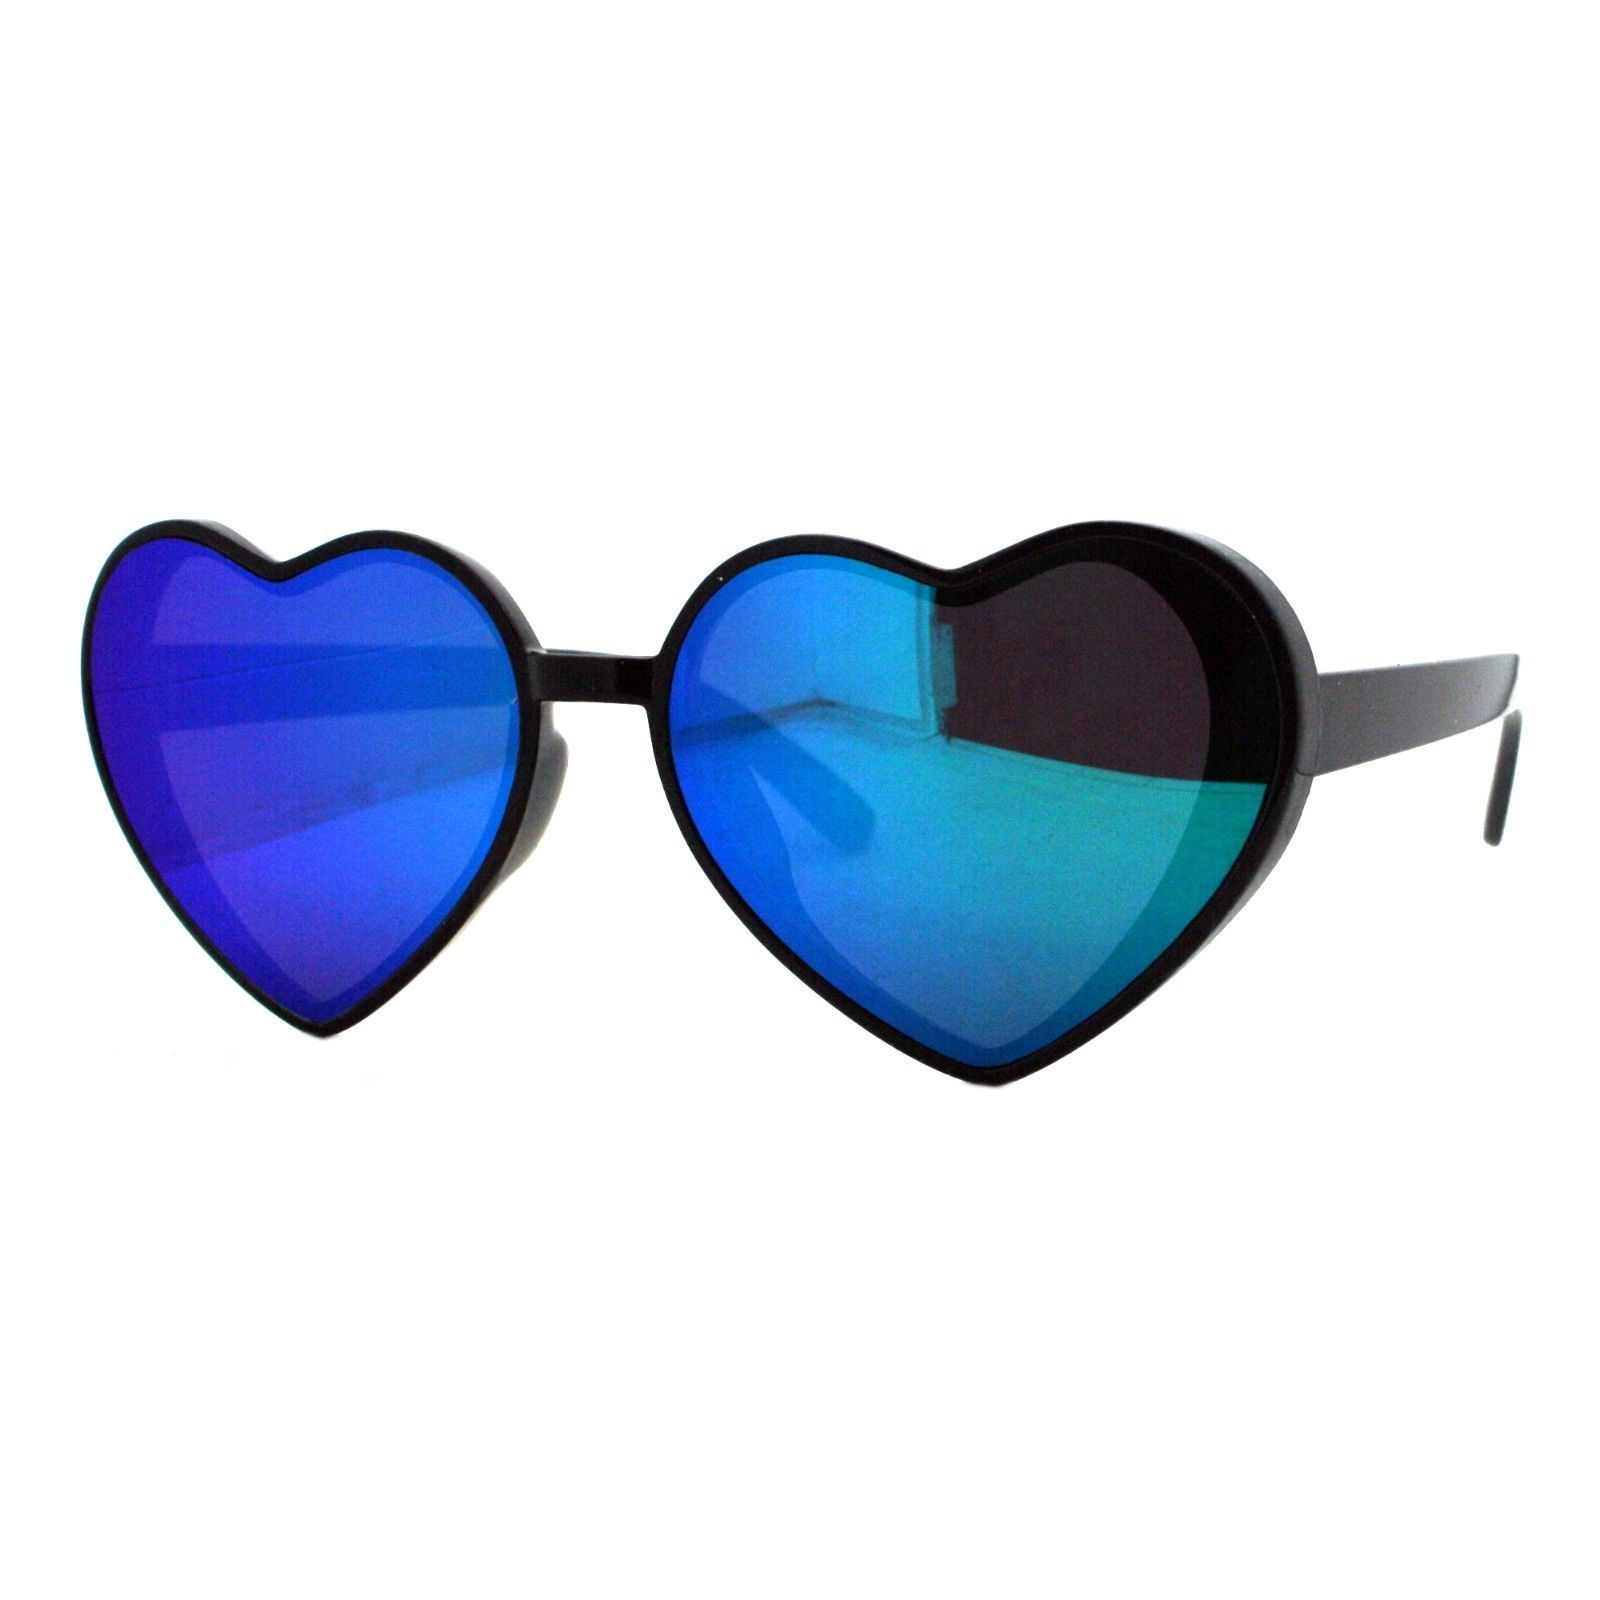 Oversized Heart Shape Sunglasses Womens Fashion Mirrored Lens Shades image 4